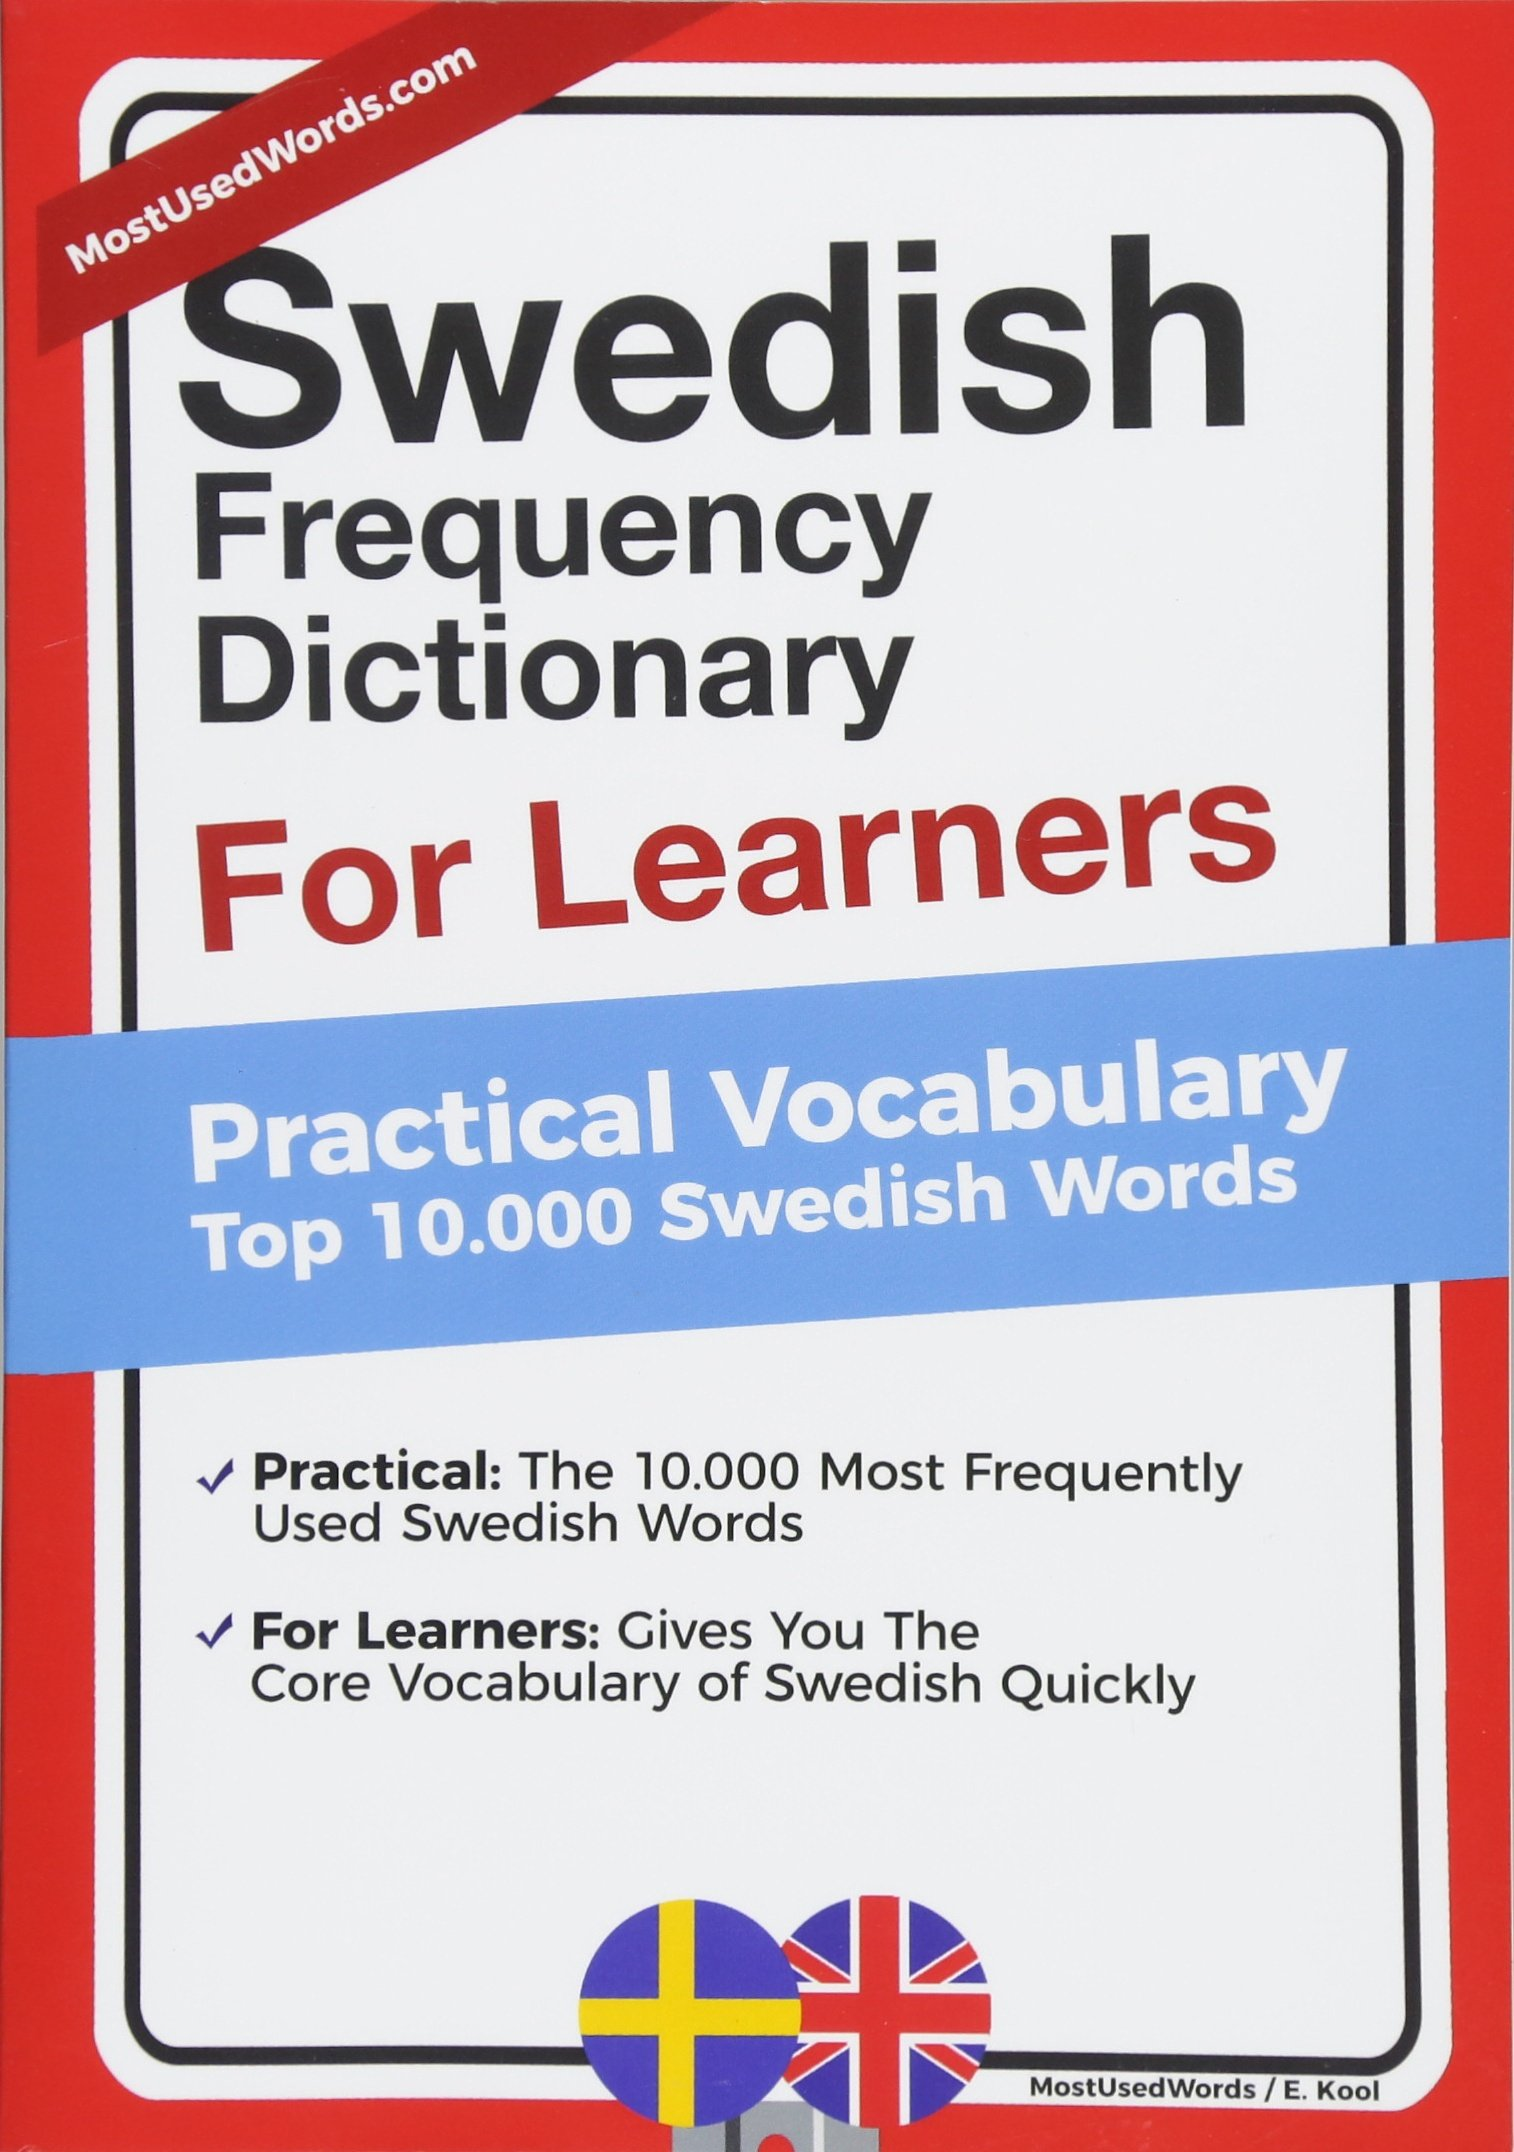 Swedish Frequency Dictionary For Learners  Practical Vocabulary   Top 10000 Swedish Words